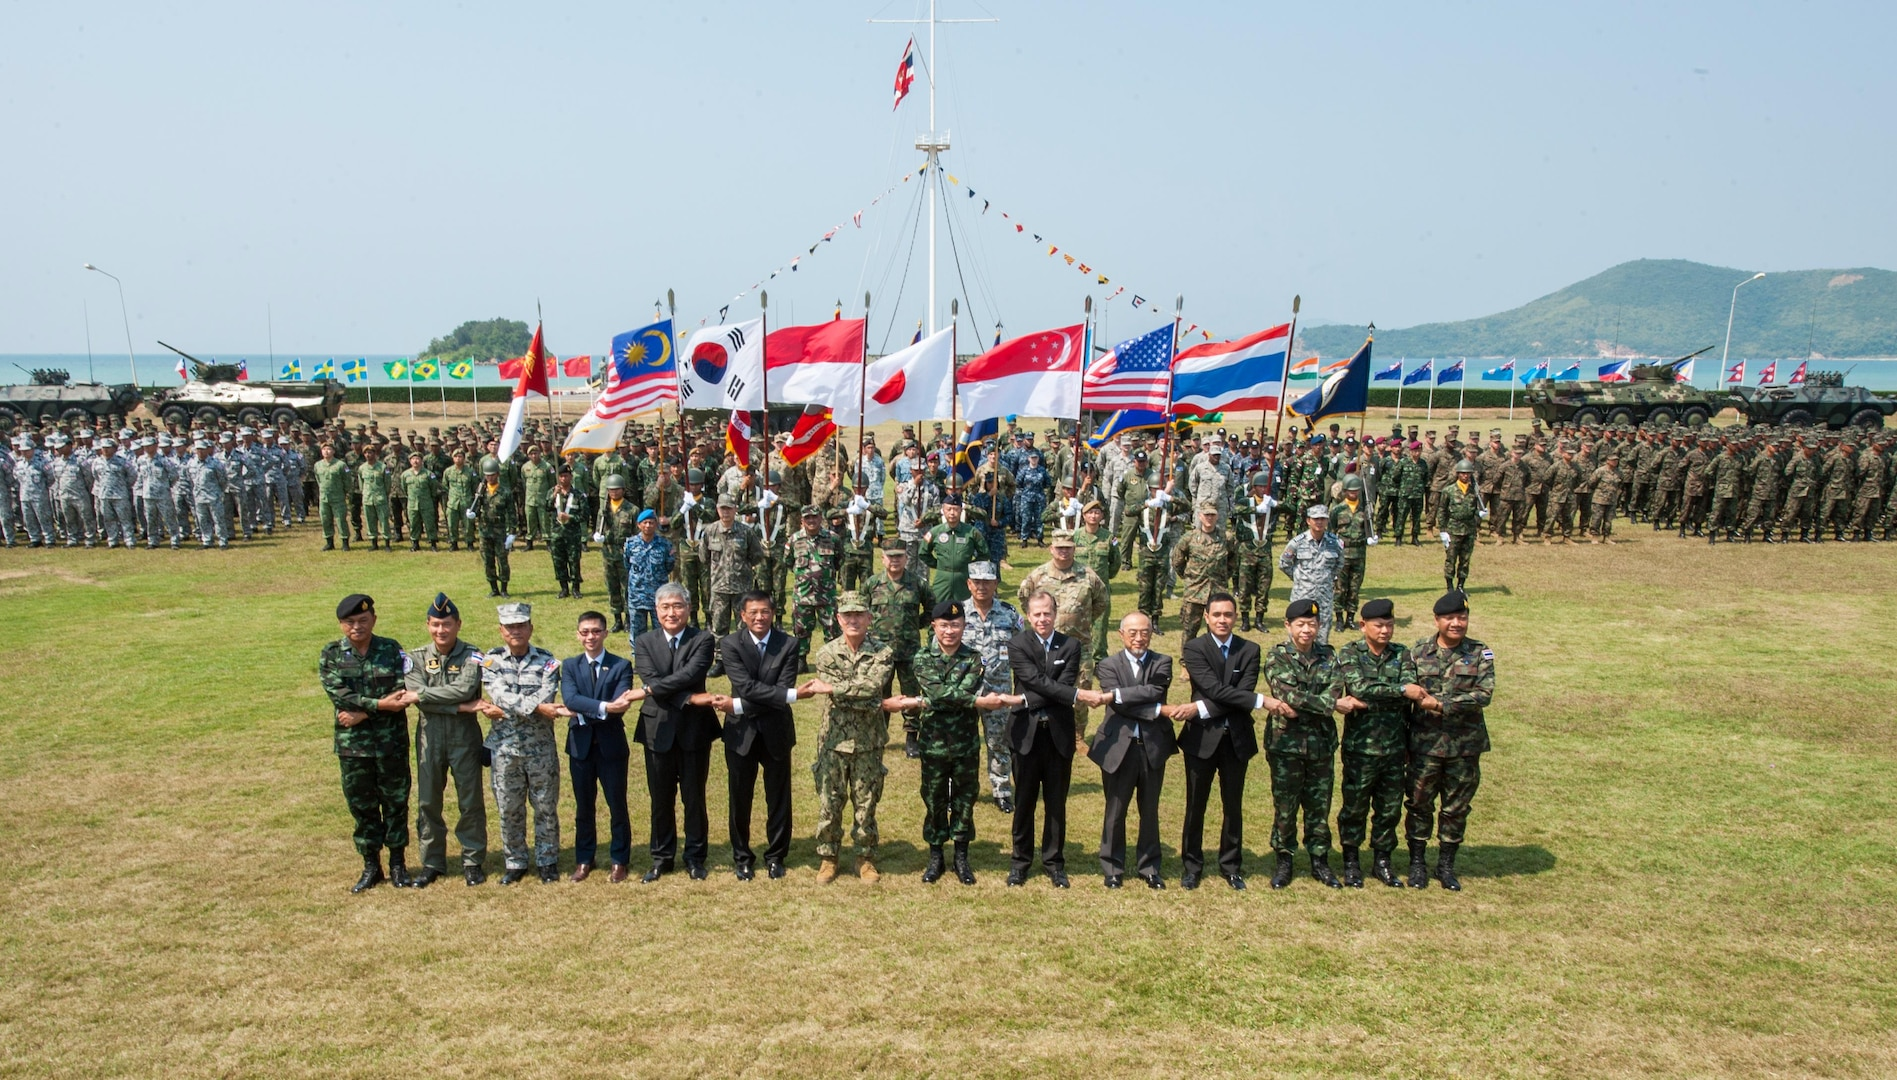 Multi-National Forces officials and representatives pose for a group photo during the official opening ceremony of Cobra Gold 2017, Feb. 14, 2017. Cobra Gold, in its 36th iteration, is the largest Theater Security Cooperation exercise in the Indo-Asia-Pacific. This year's focus is to advance regional security and ensure effective responses to regional crises by bringing together a robust multinational force to address shared goals and security commitments in the Indo-Asia-Pacific region.